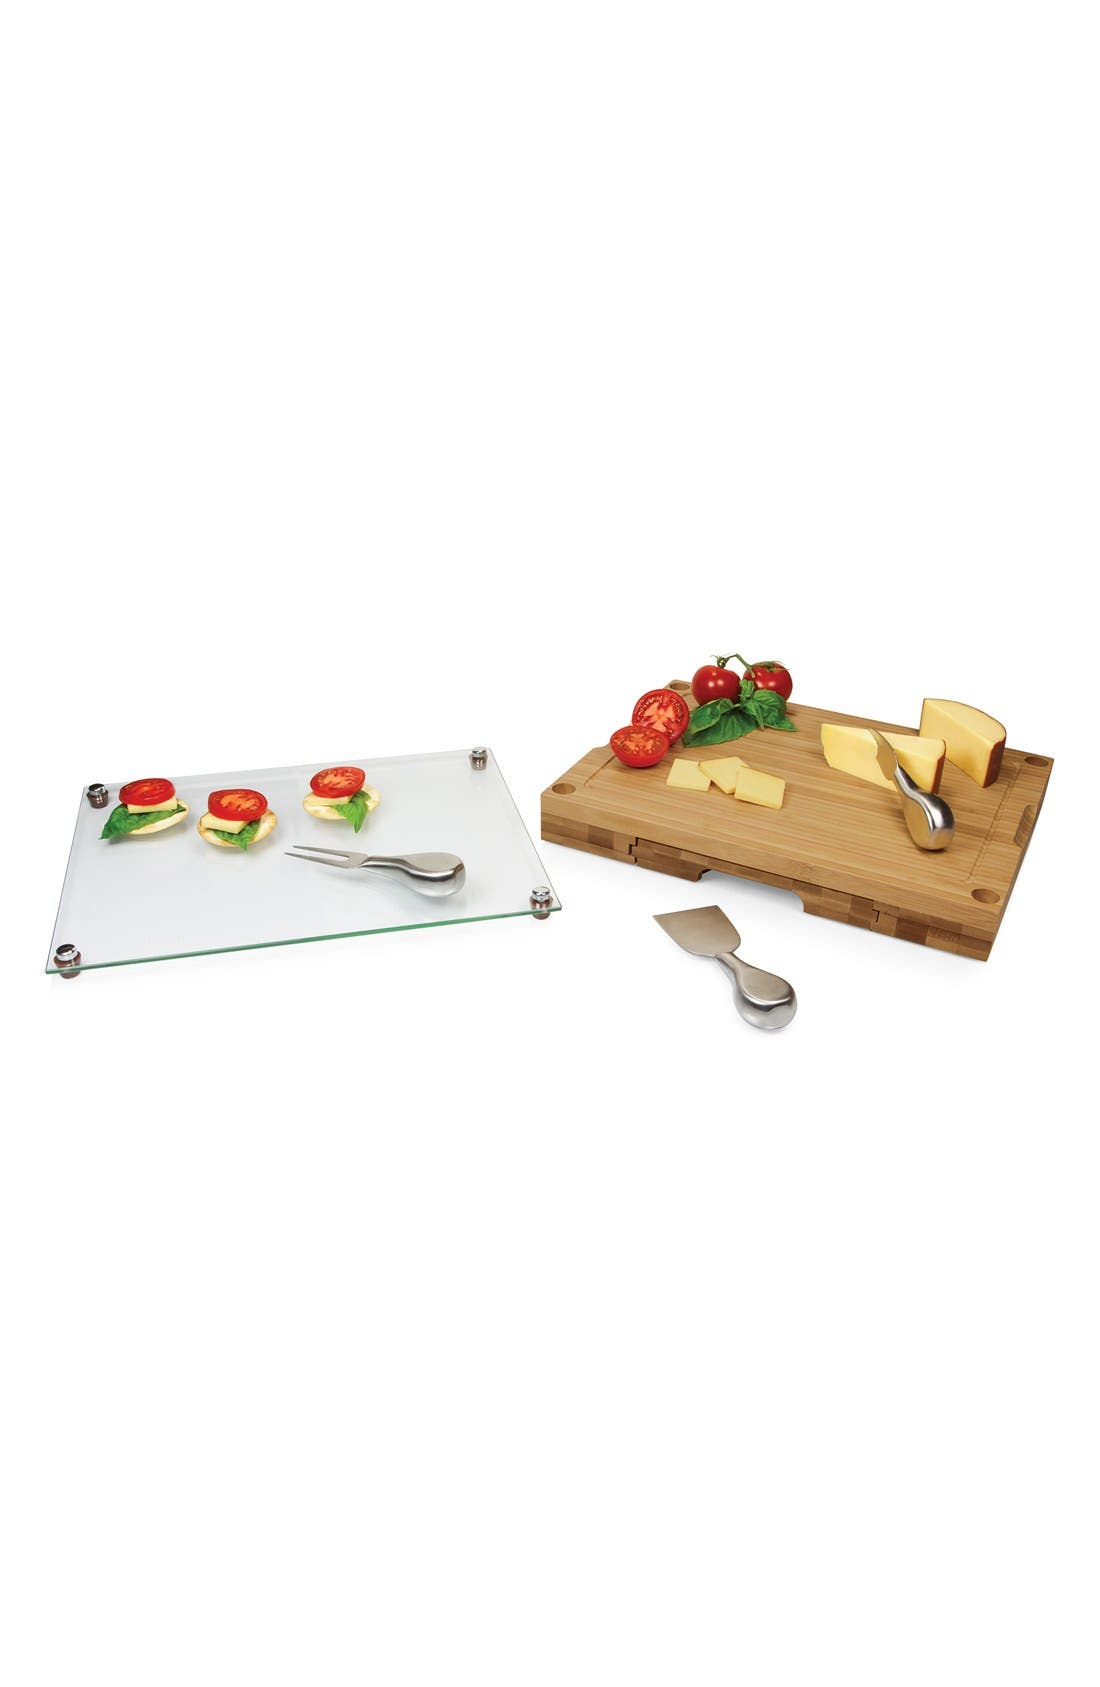 'Concerto' Cutting Board Set,                             Alternate thumbnail 3, color,                             200